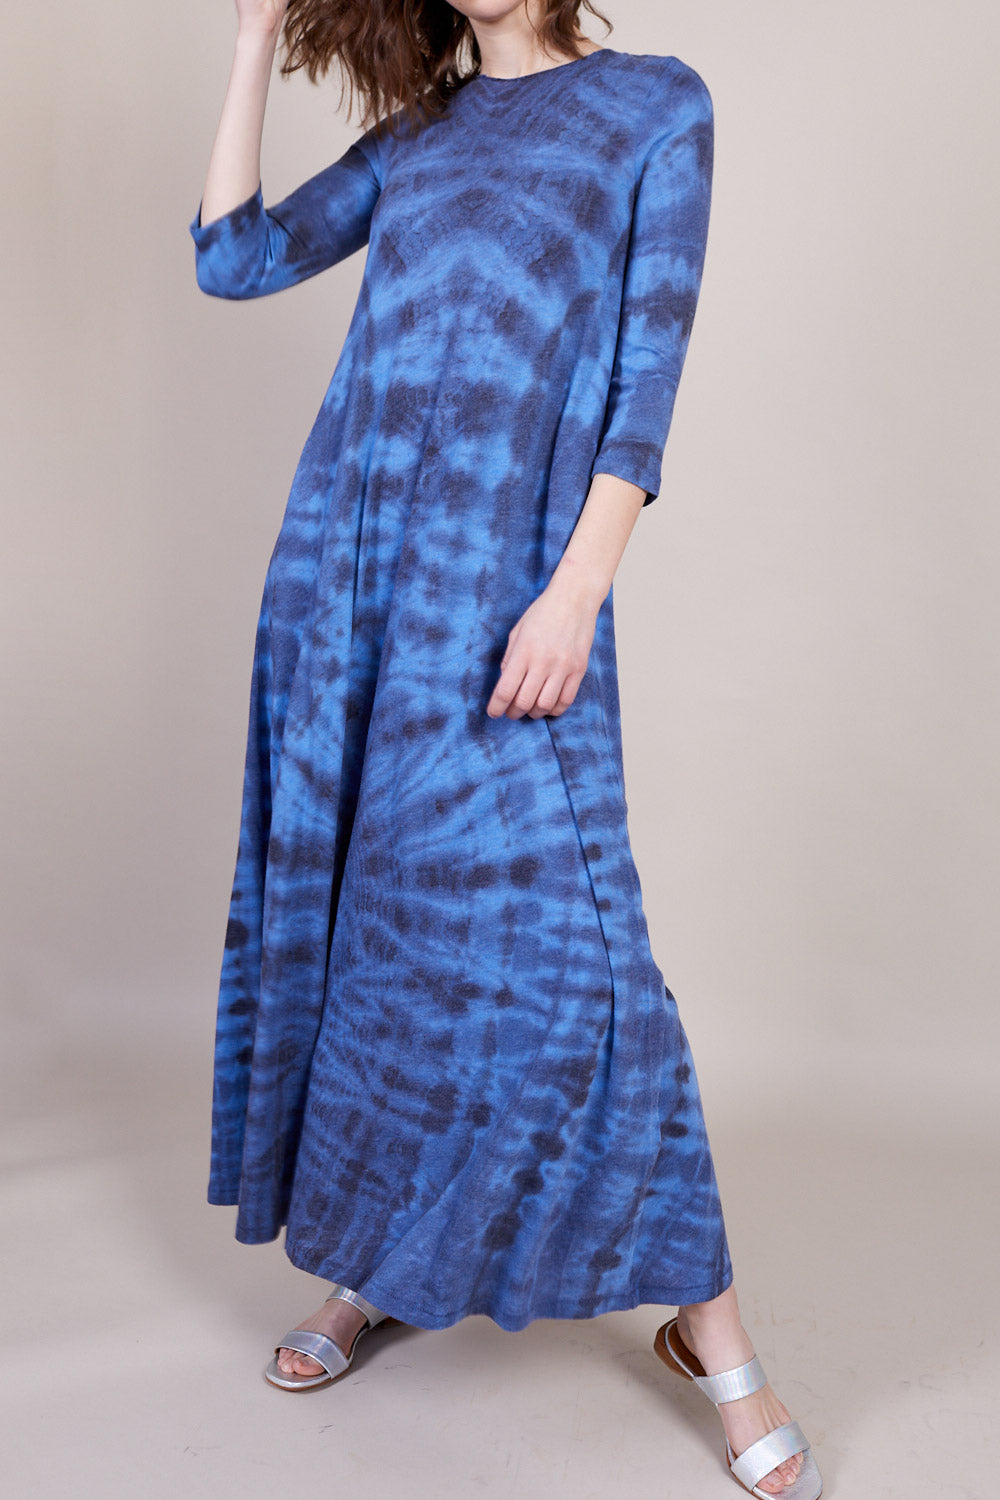 Drama Maxi Dress in Aqua Tie Dye